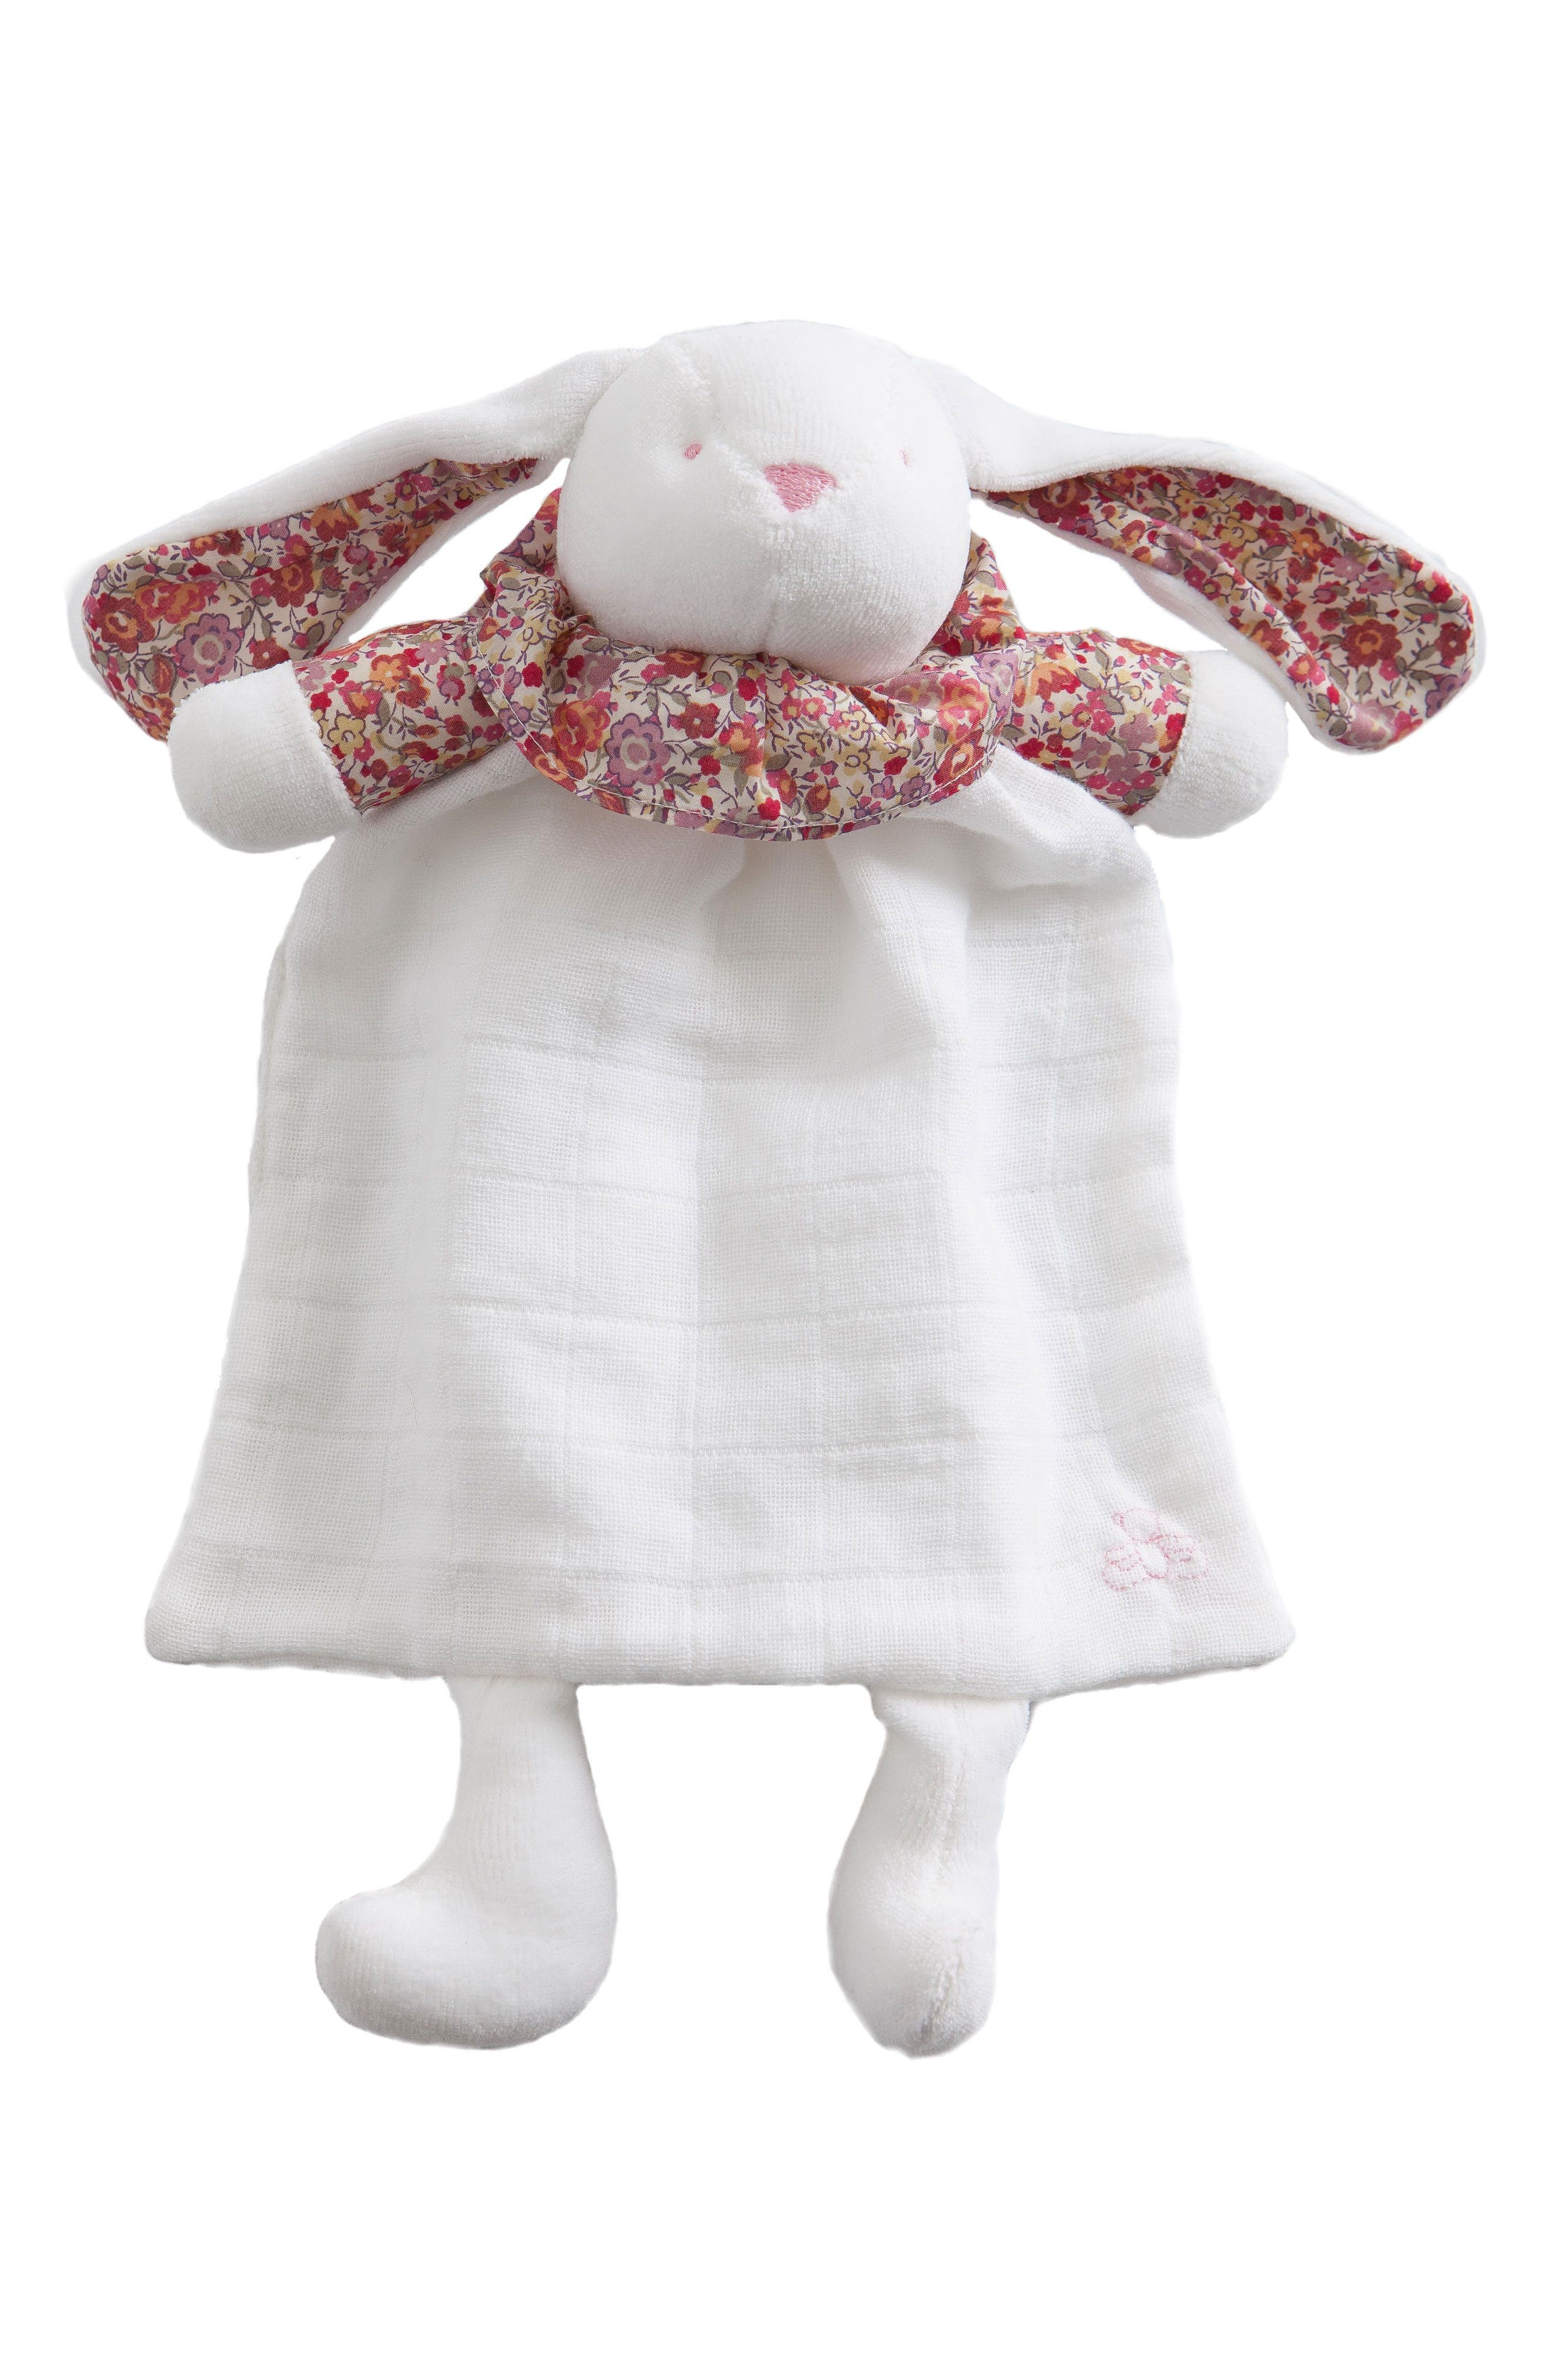 x Liberty of London Rabbit Lovey Toy,                             Main thumbnail 1, color,                             Red